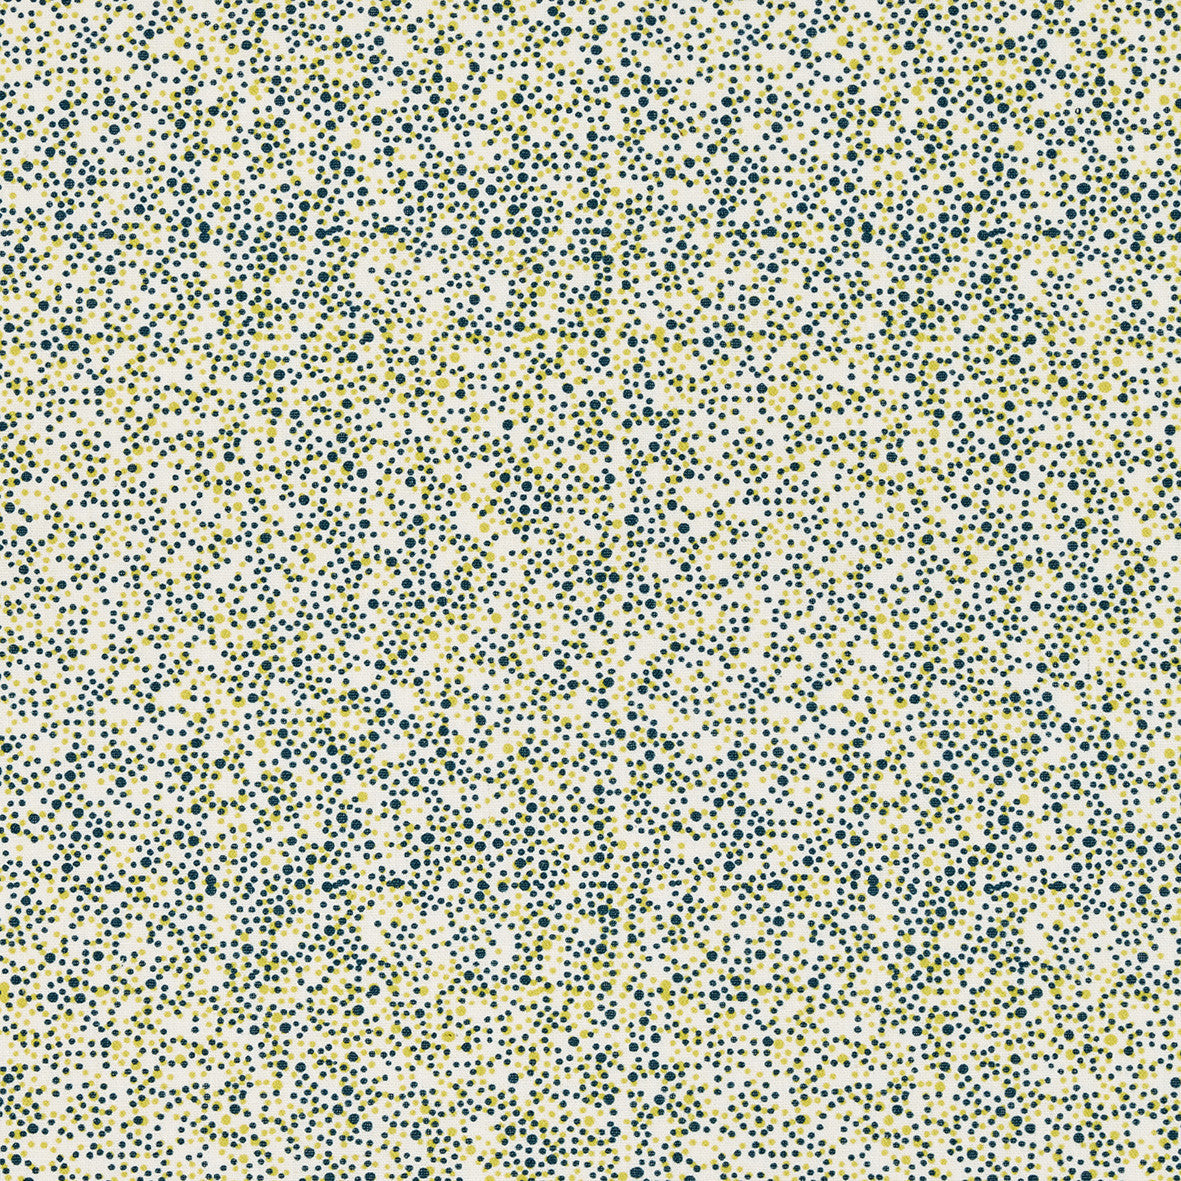 Multicolour Spots Pattern Printed Linen Cotton Canvas Home Decor Interiors Fabric by the meter or yard for curtains, blinds or upholstery in Dark Petrol Blue and Bright Chartreuse Yellow ships from Canada (USA)